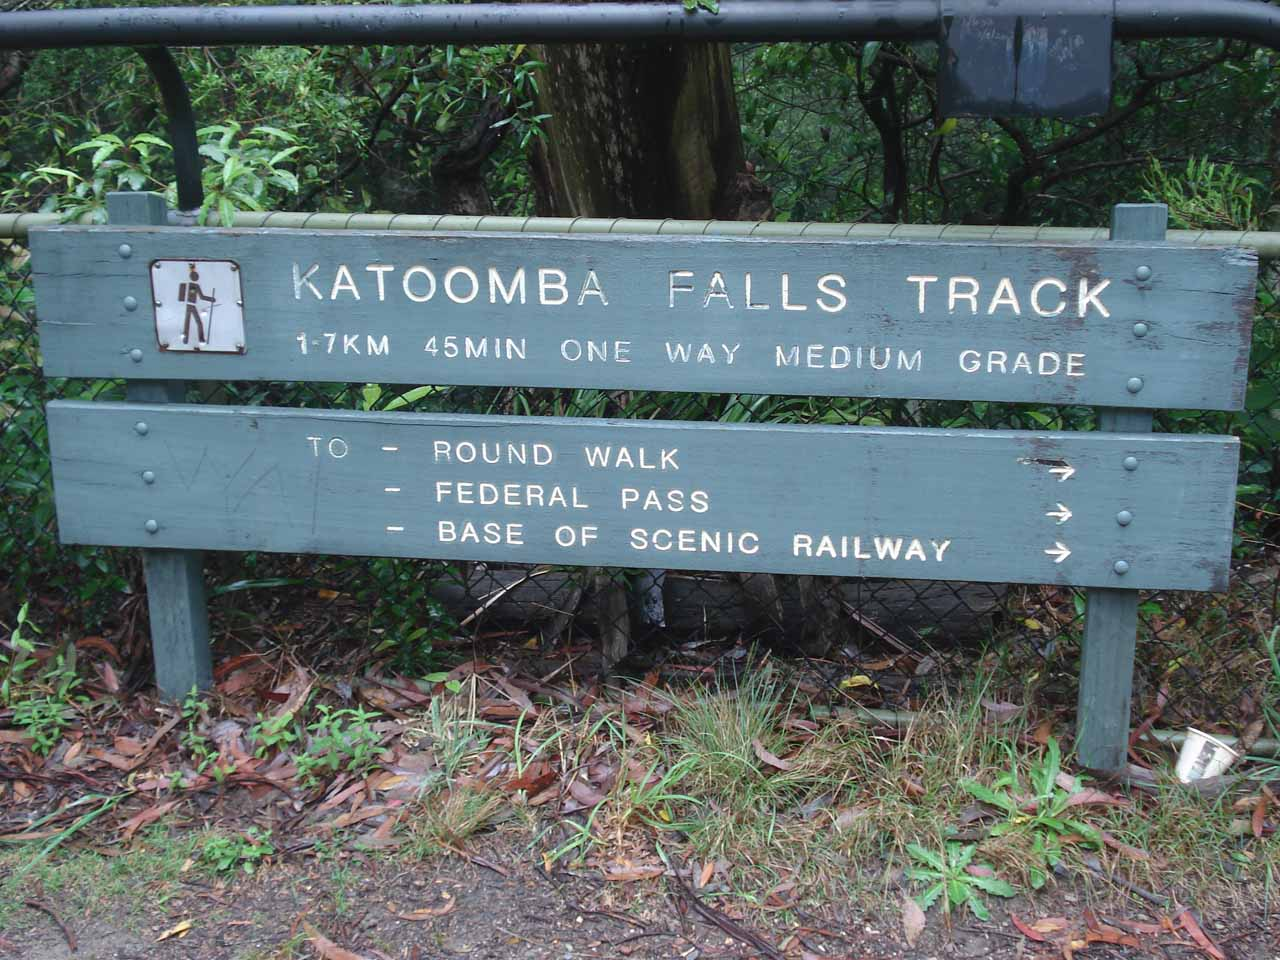 A sign telling us how far of a walk it would have been to get all the way down to Katoomba Falls' base